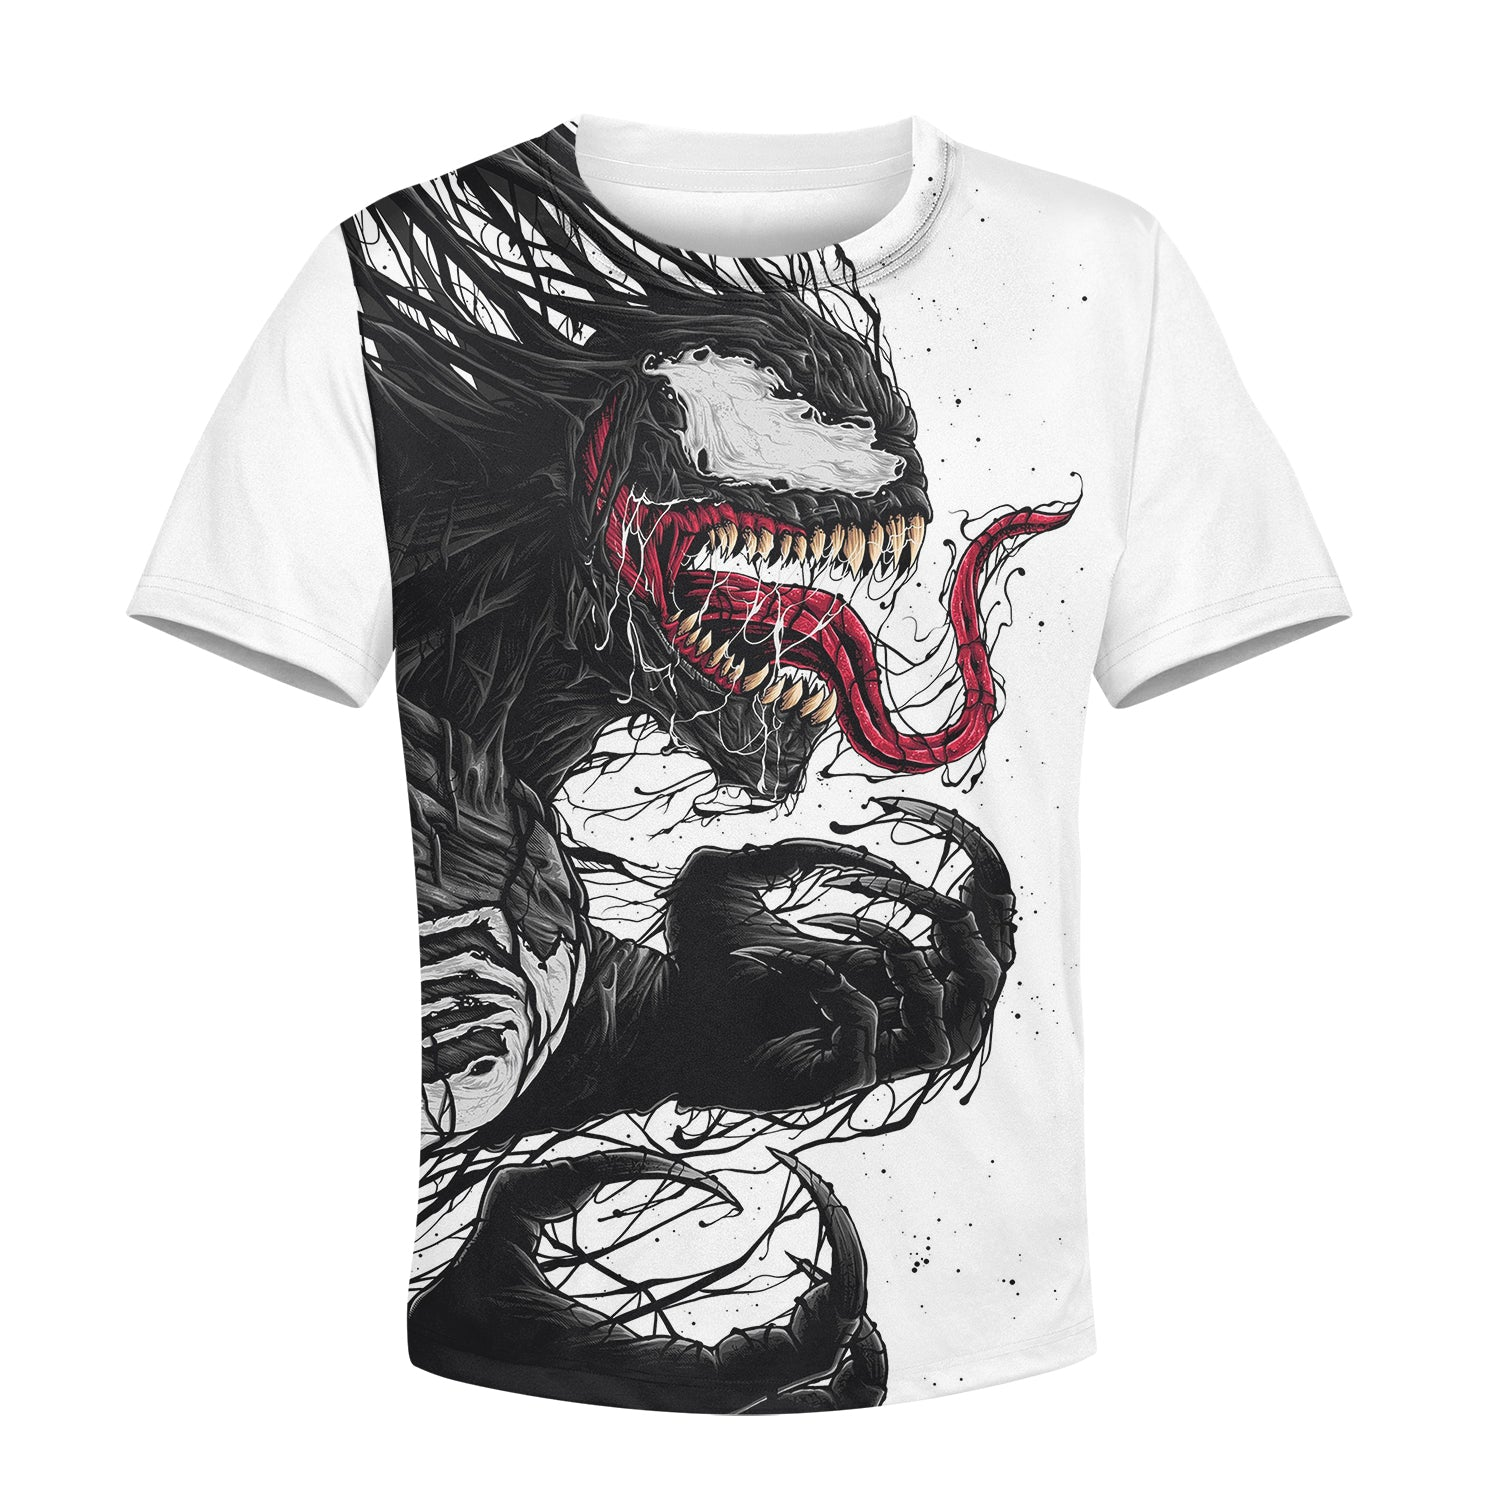 Beautiful 3D All Over Printed Venom Clothes For Kids